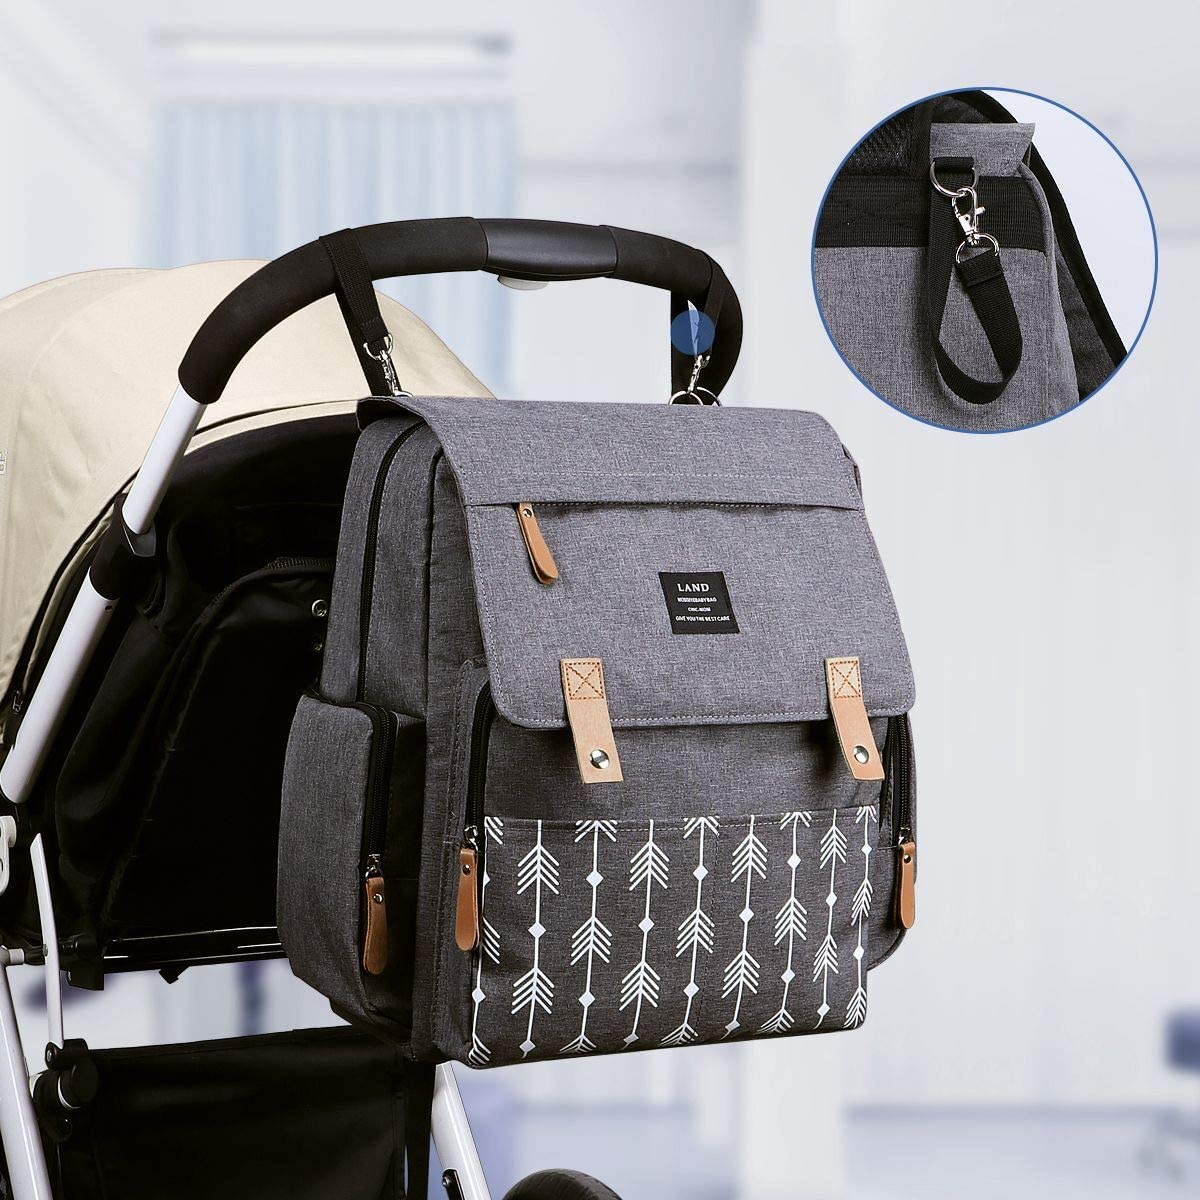 Multi-Function /& Waterproof Large Capacity EZGO Land 4 in 1 Diaper Bag Backpack Baby Nappy Changing Bag with 1 Changing Mat /& 2 Stroller Clips Hospital Maternity Bag Arrow Pattern for Mom /& Dad